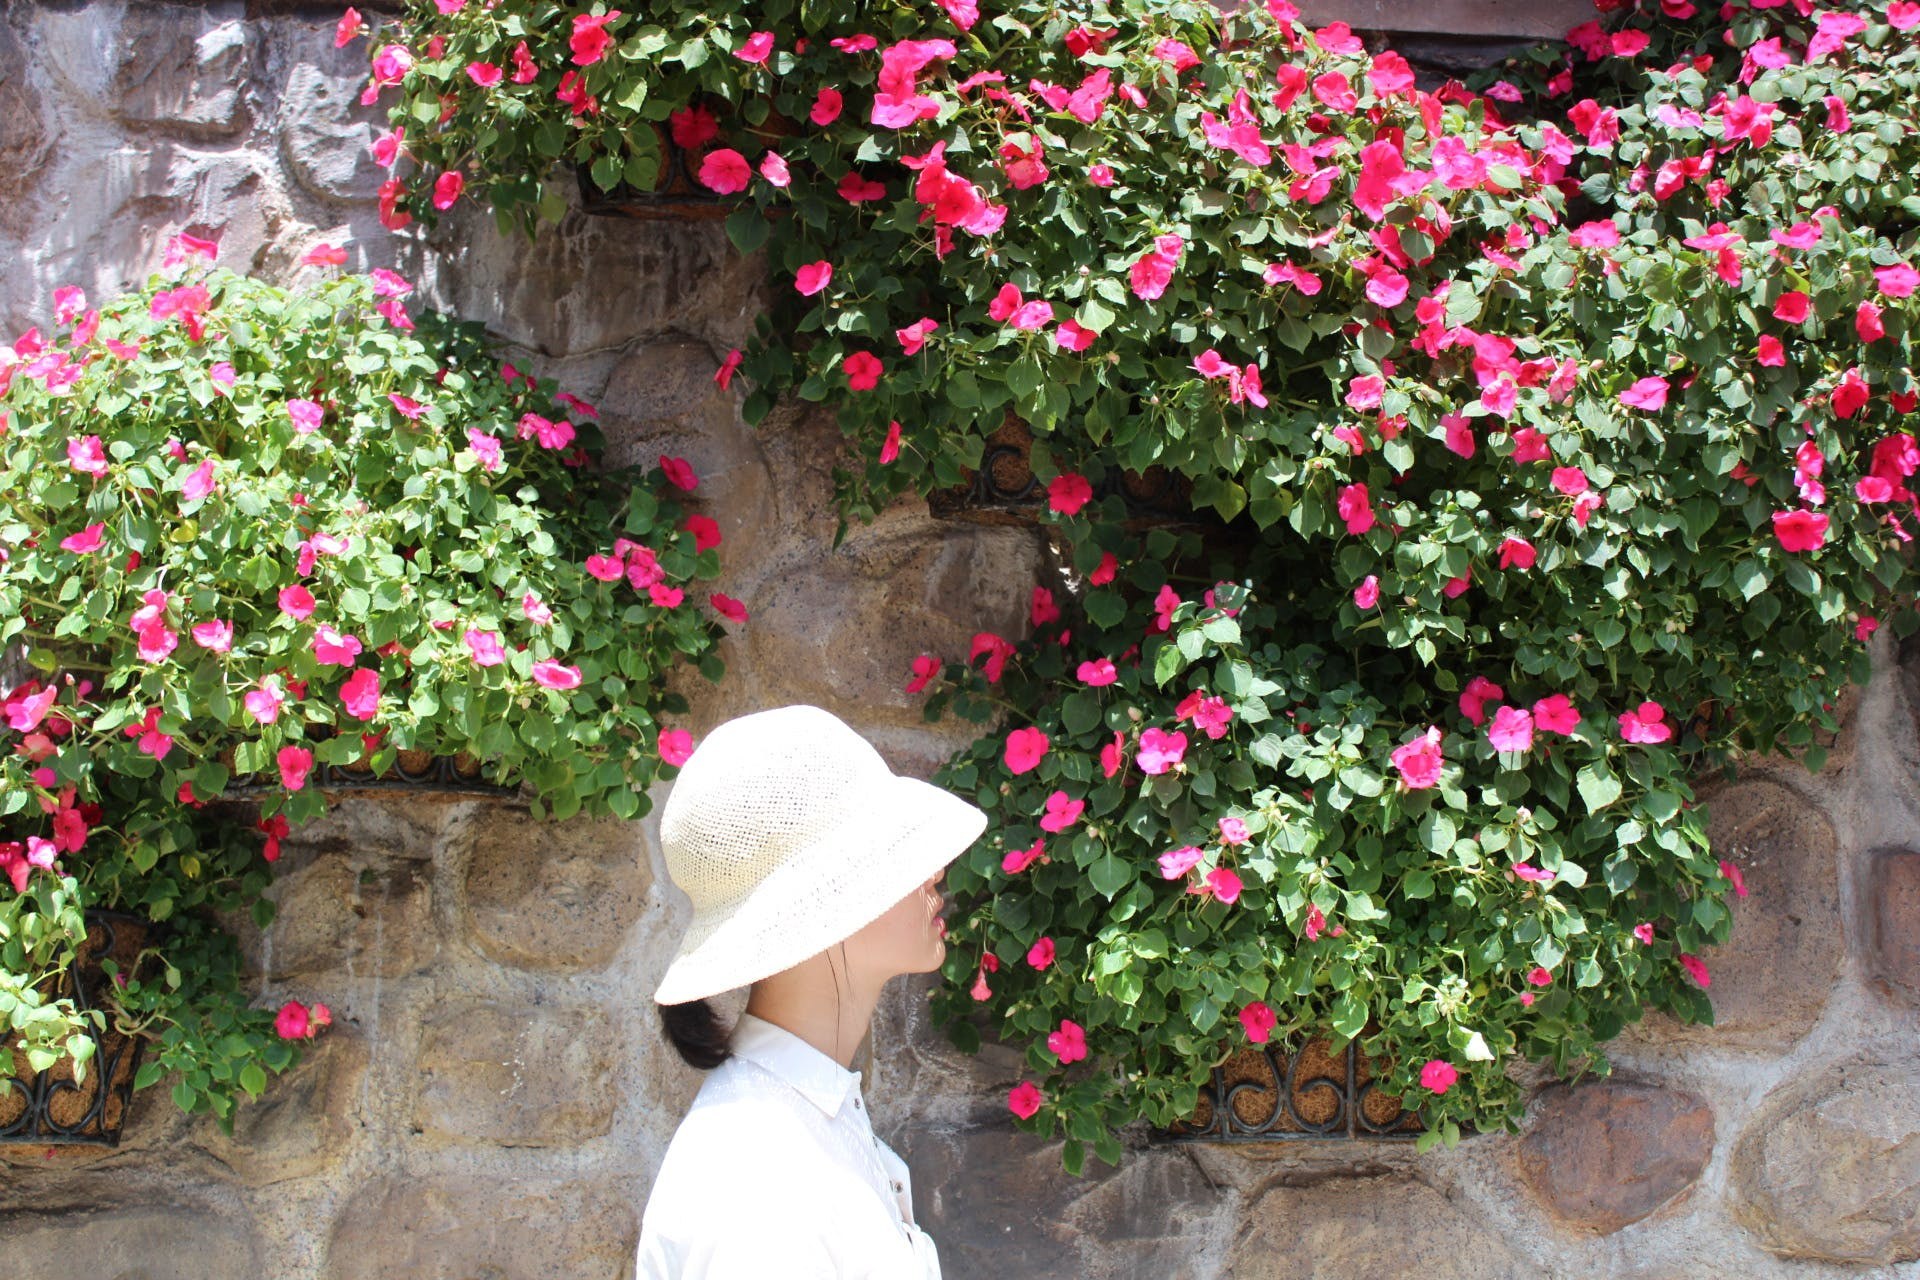 Woman Wearing White Bucket Hat With White Top Beside Pink Petaled Flower at Daytime